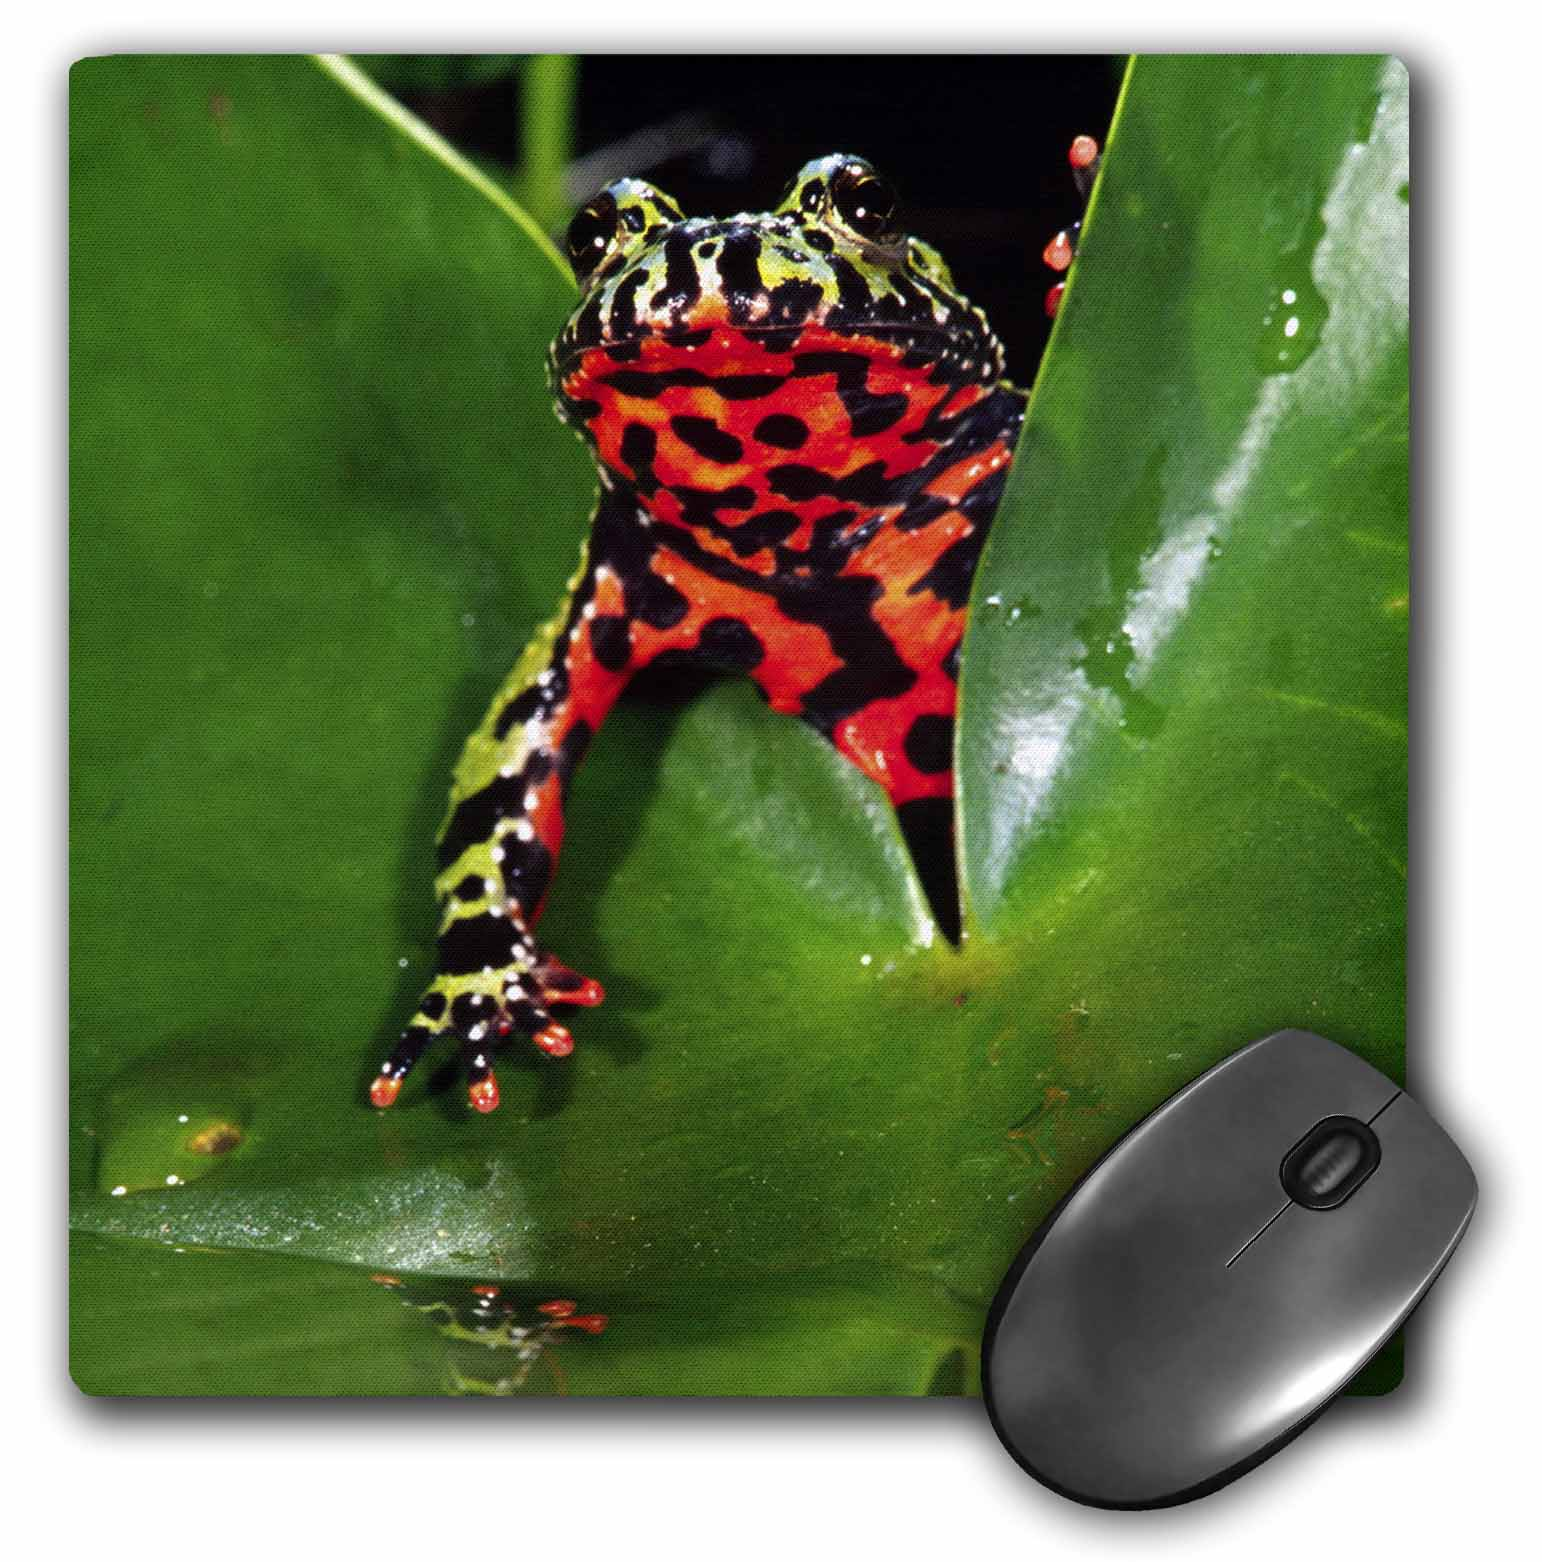 3dRose Fire Belly Toad, Native to China - NA02 DNO0112 - David Northcott, Mouse Pad, 8 by 8 inches